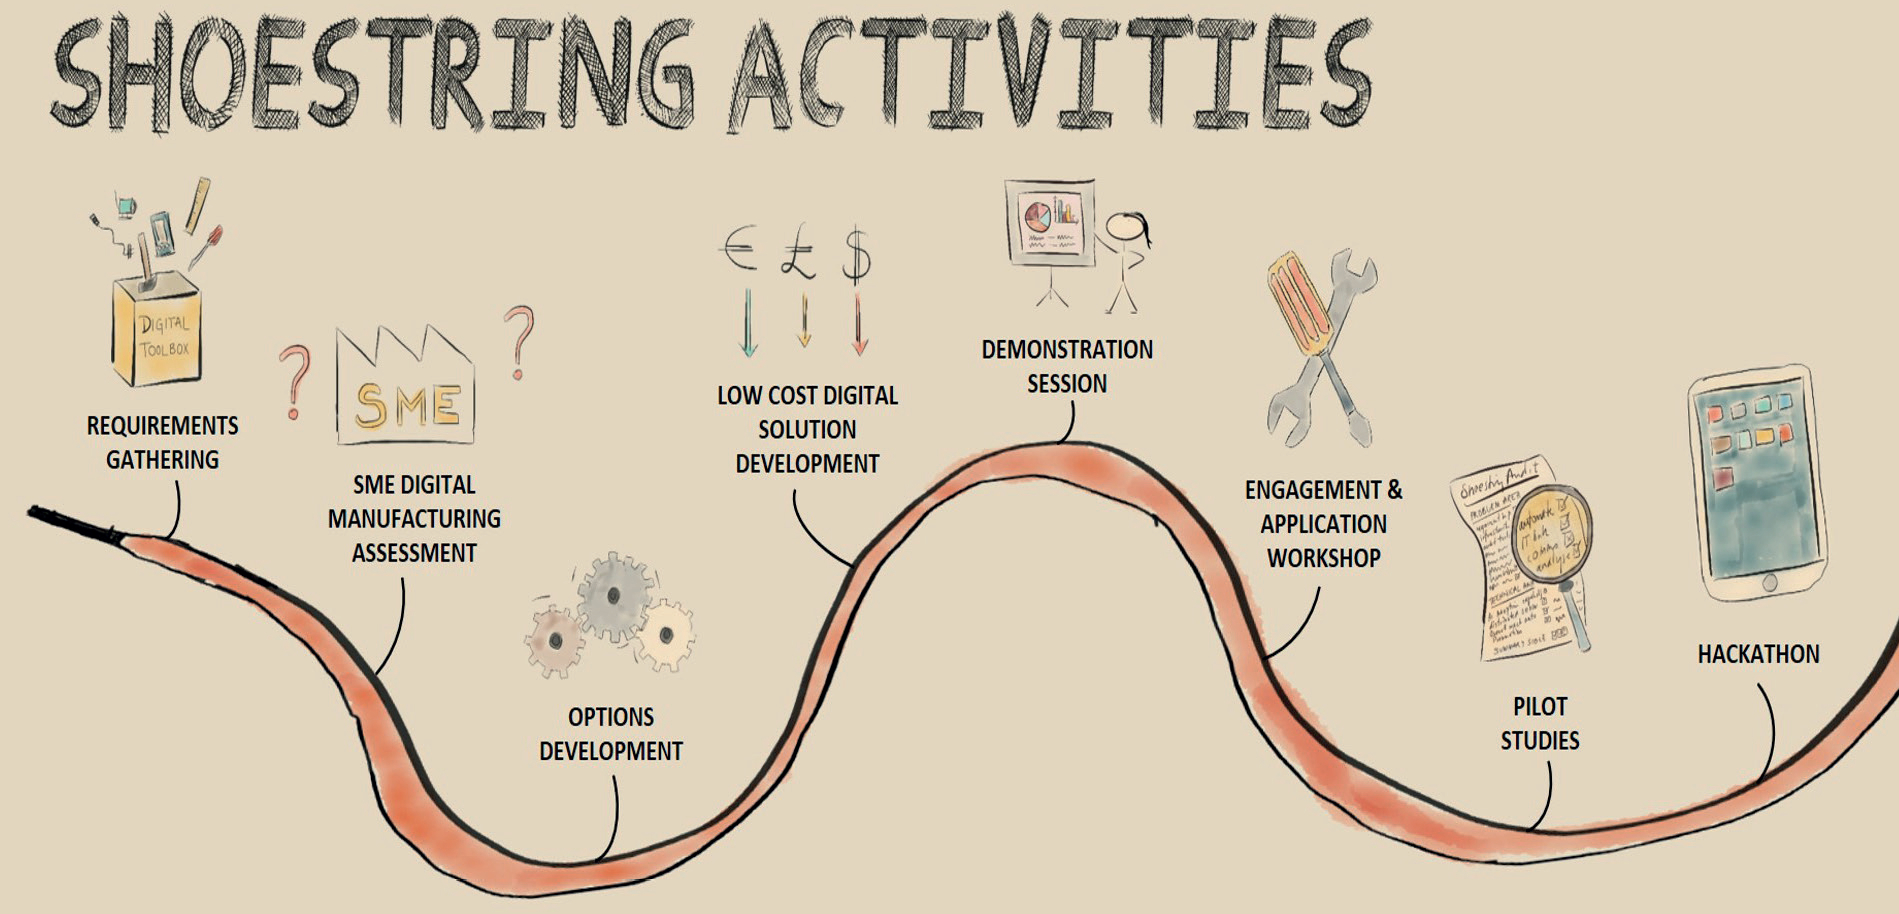 Digital Manufacturing on a Shoestring Activities - image courtesy of Cambridge University, the Institute for Manufacturing.